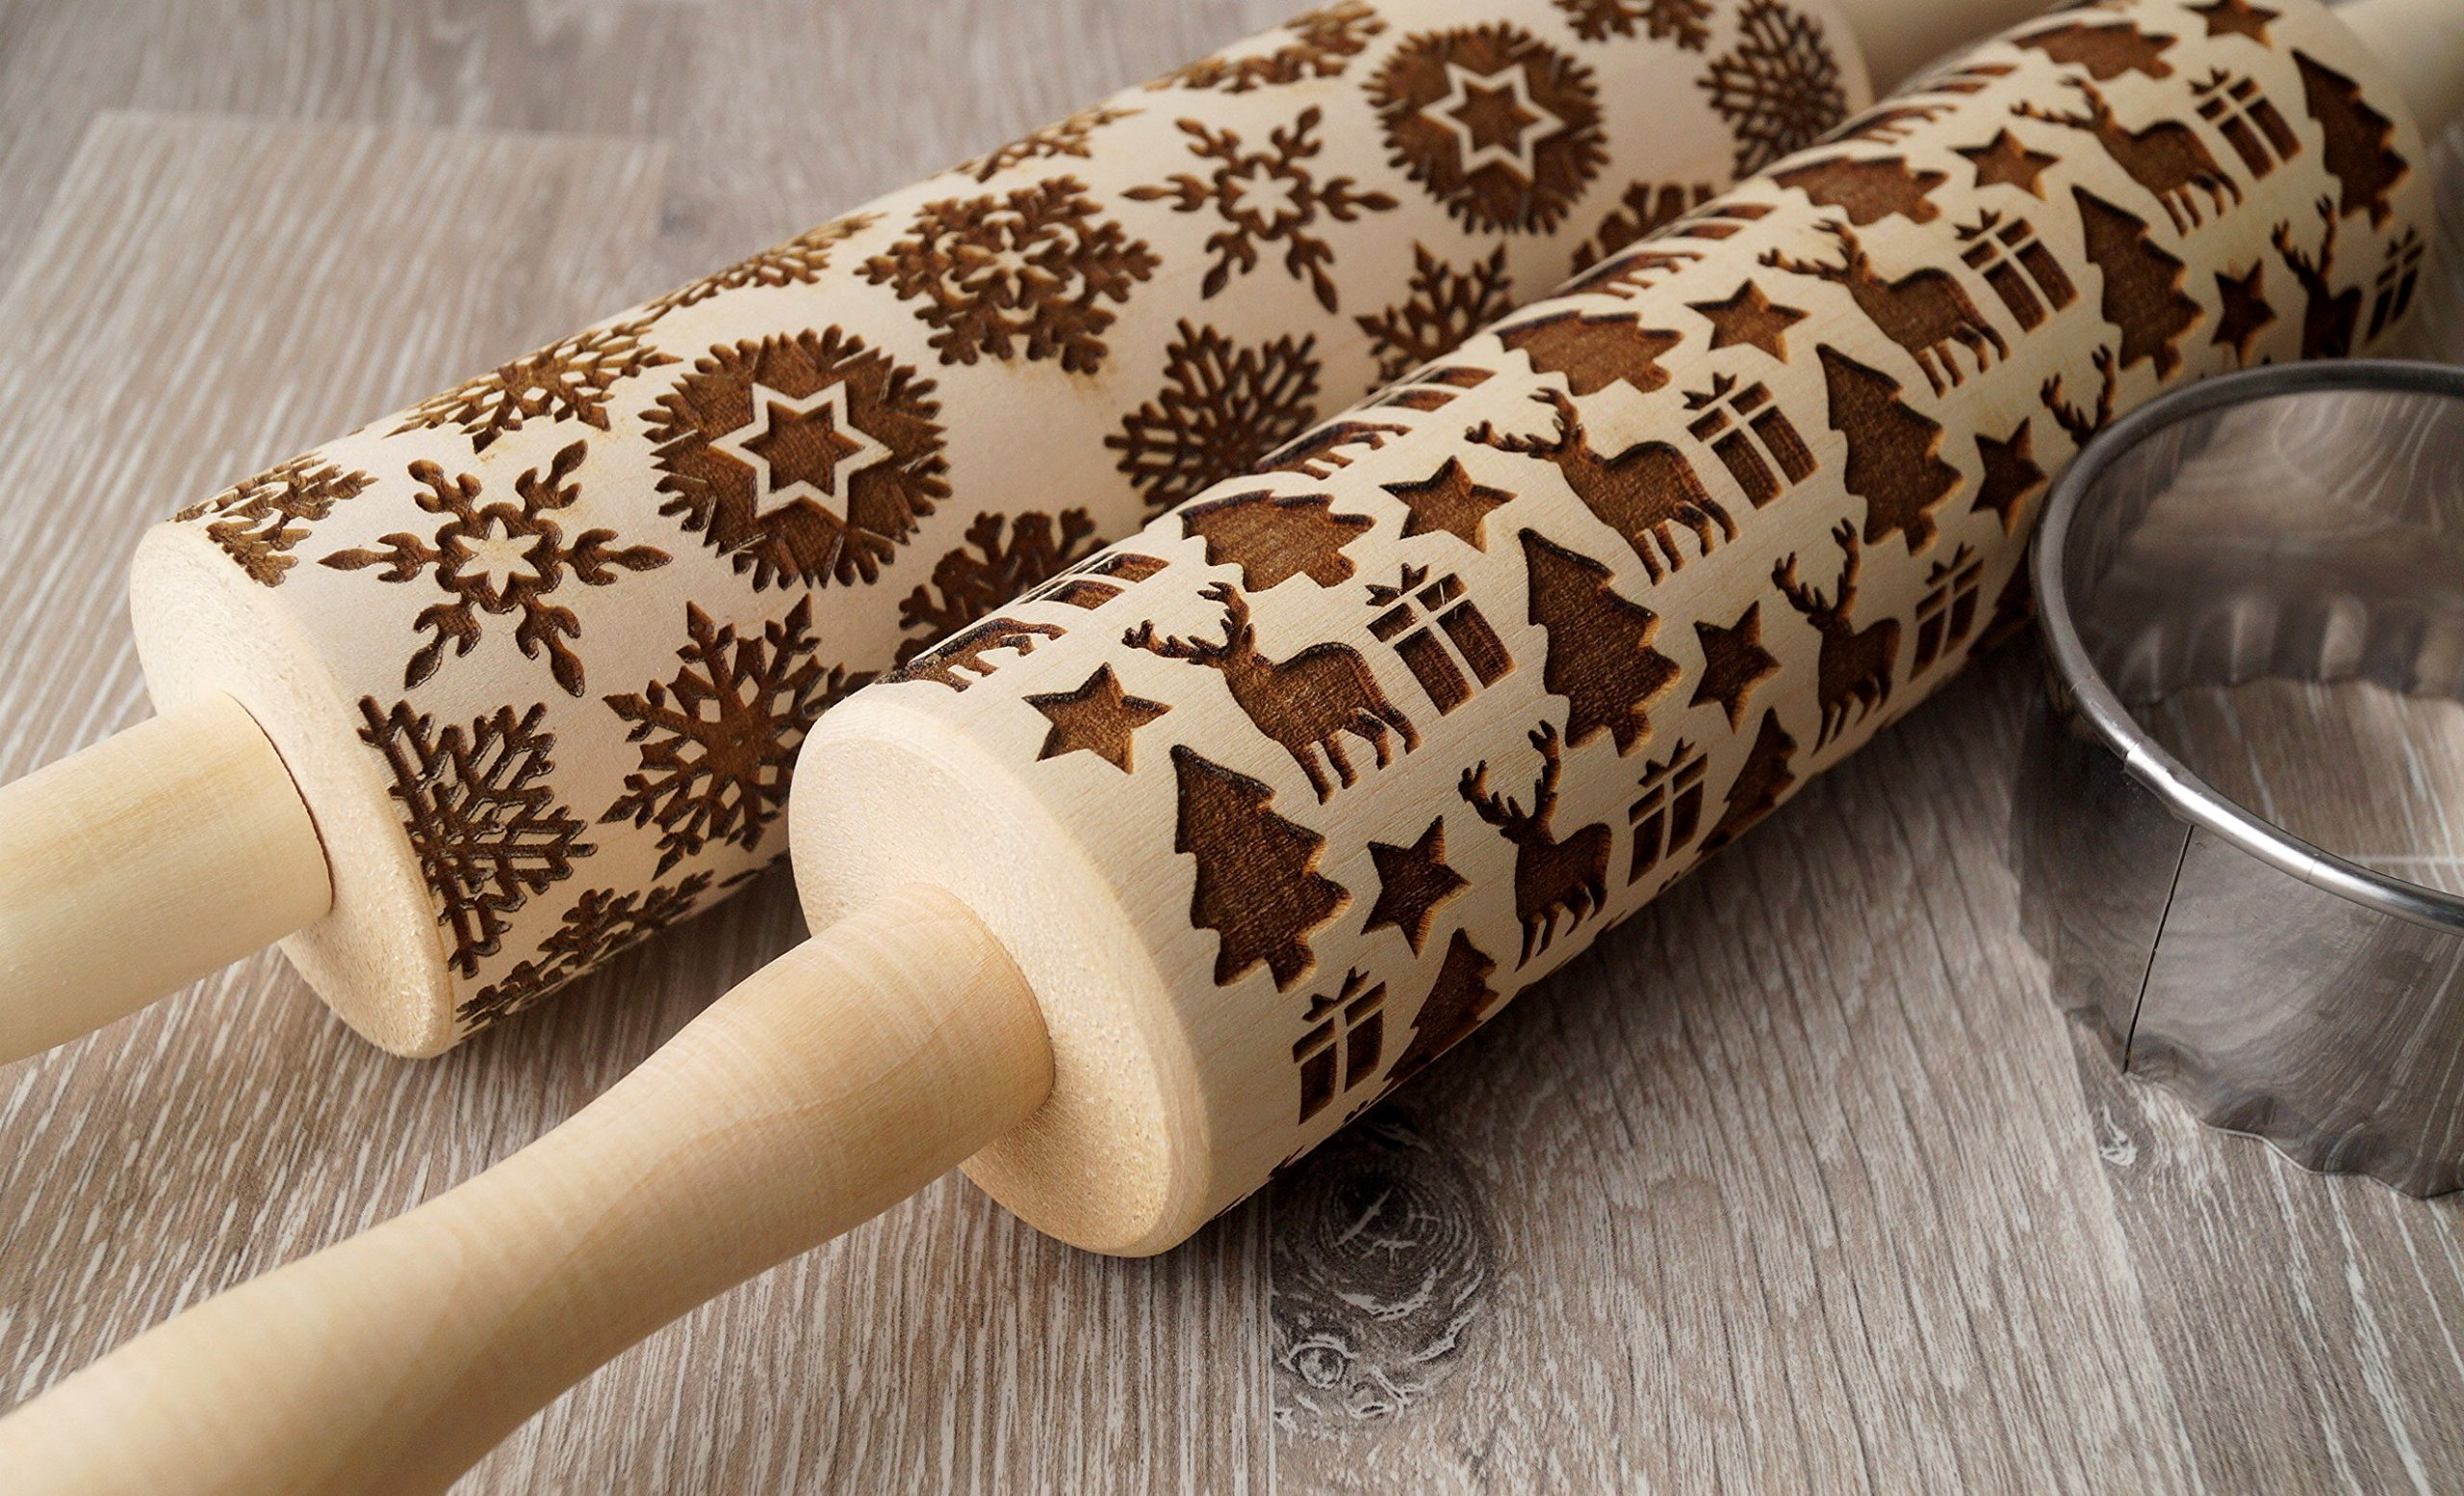 Christmas and Snowflakes rolling pins, embossing rolling pins, Christmas themed embossing rollers, cookies decorating rolling pins, Christmas icons rollers - Set of 2